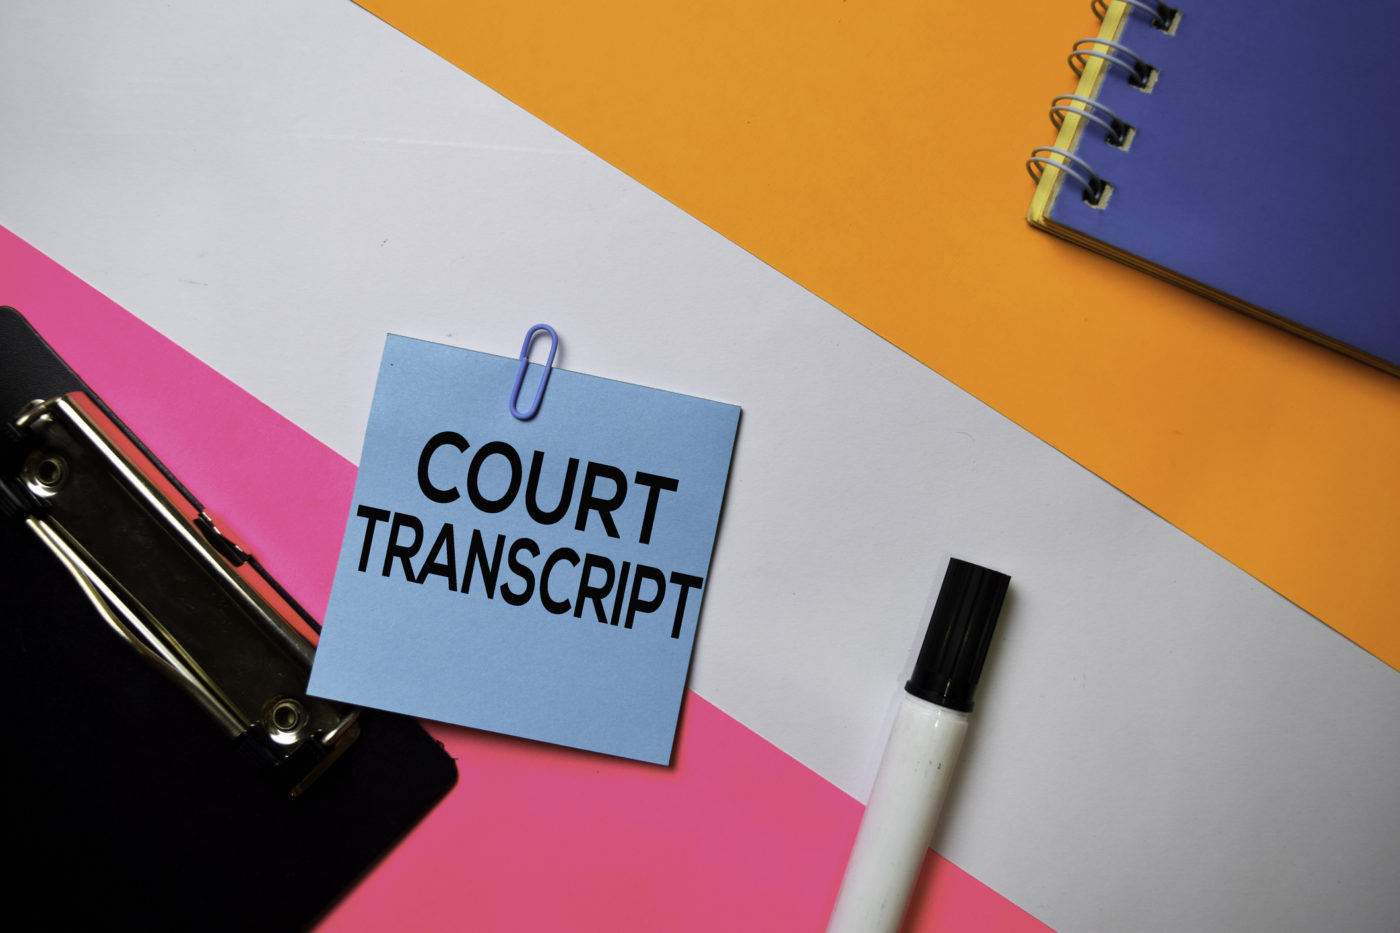 Legal Transcription Services